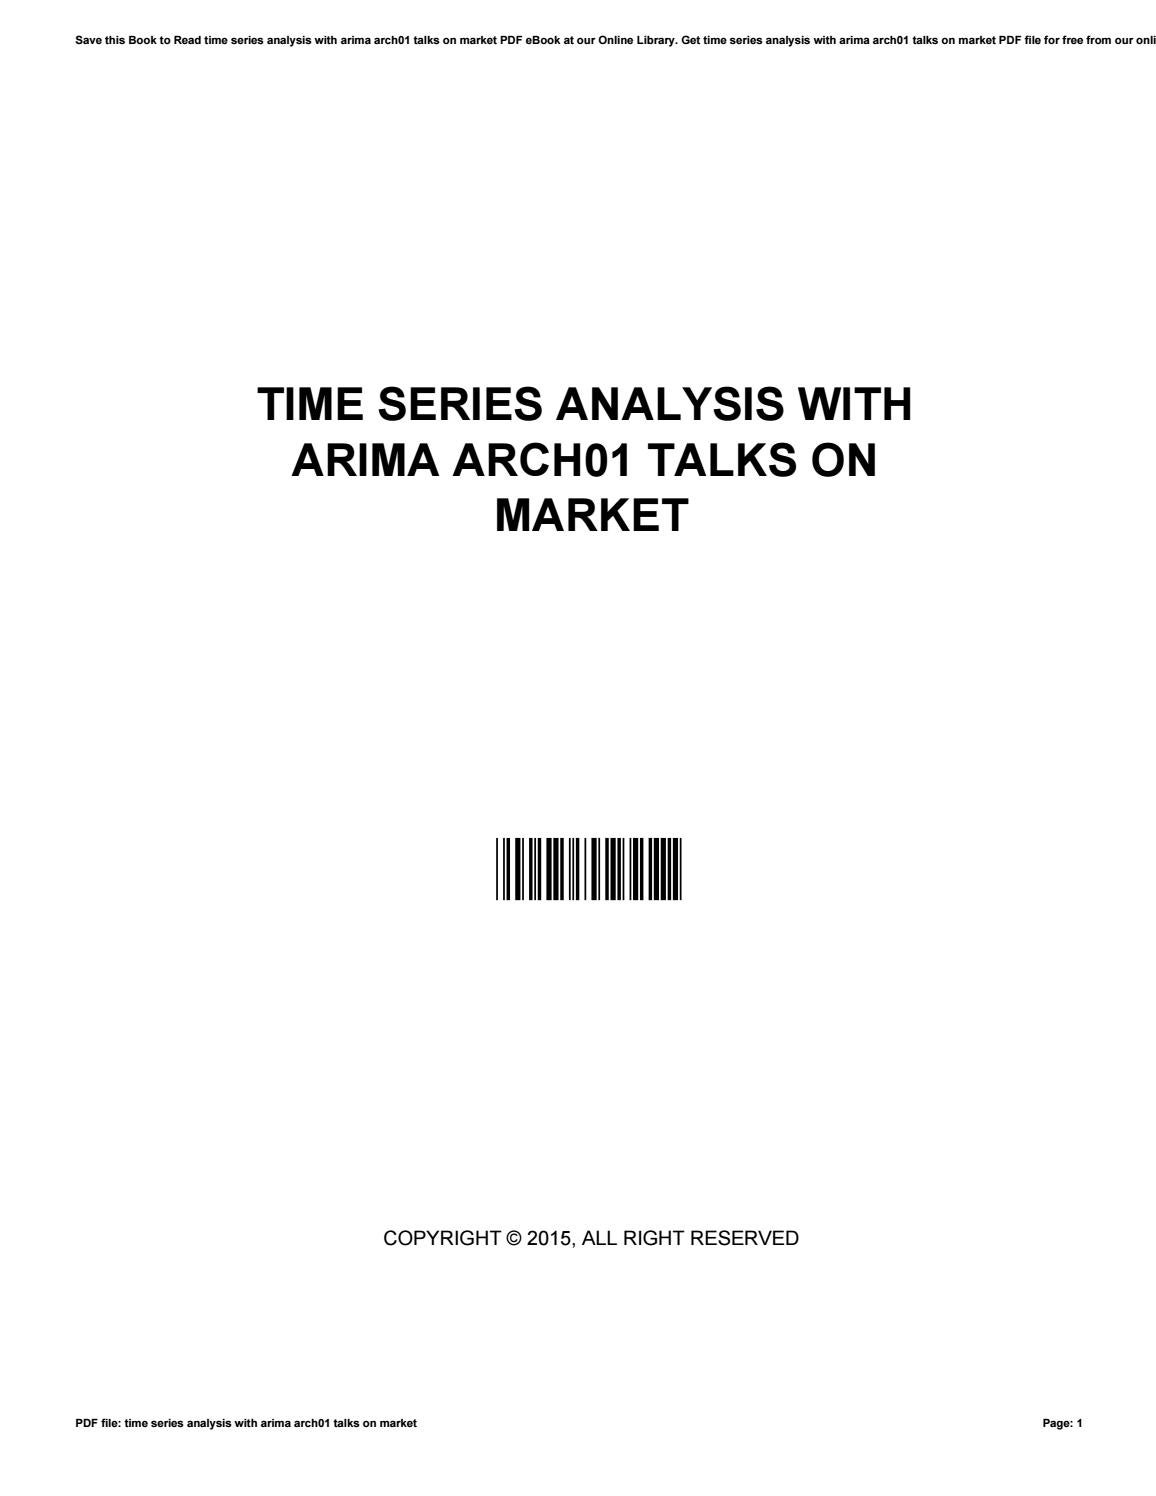 Time series analysis with arima arch01 talks on market by